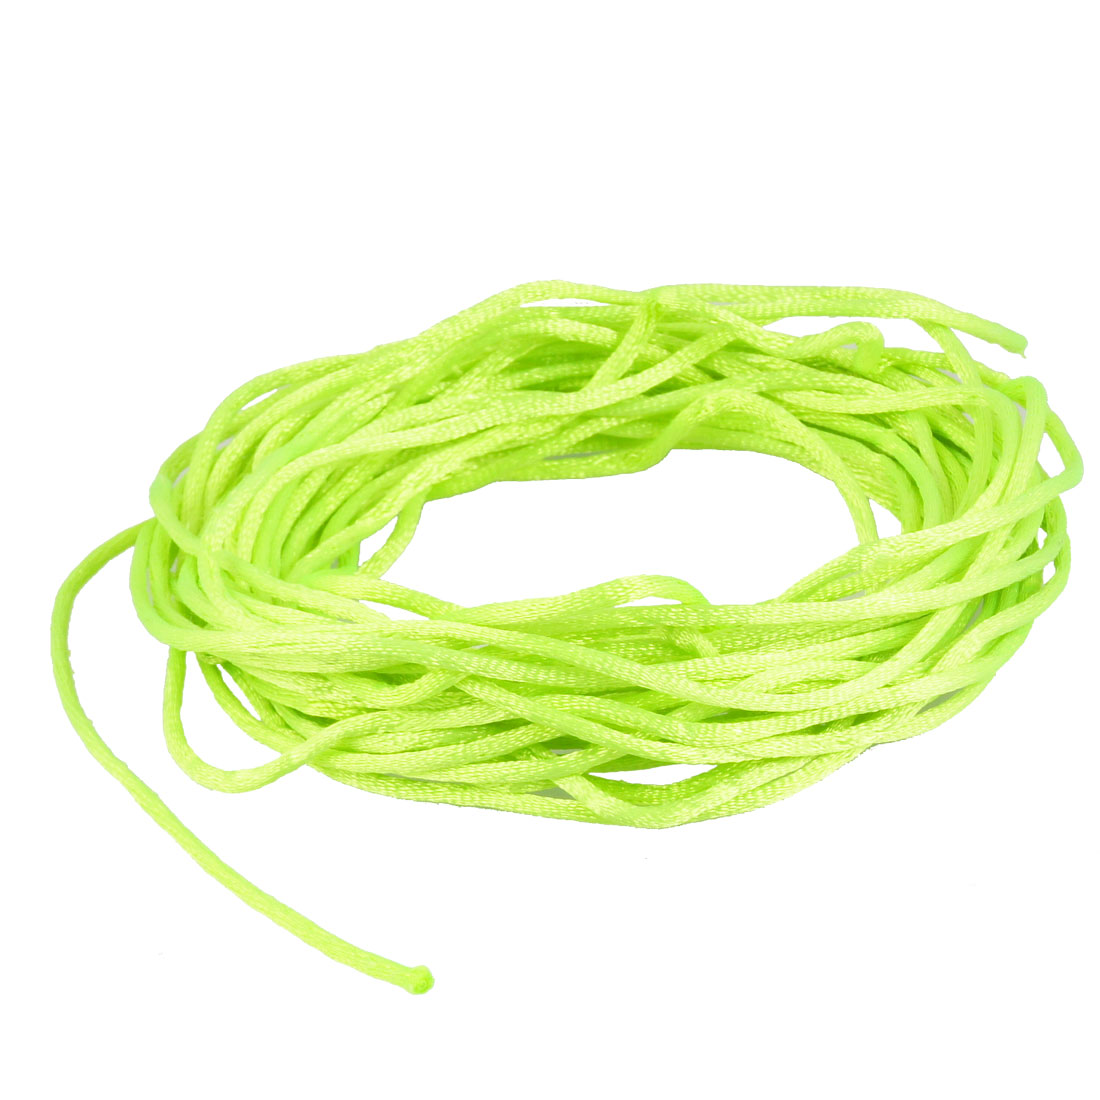 Bright Green Braided Thread Nylon Handwork Chinese Knot String Rat Tail Cord